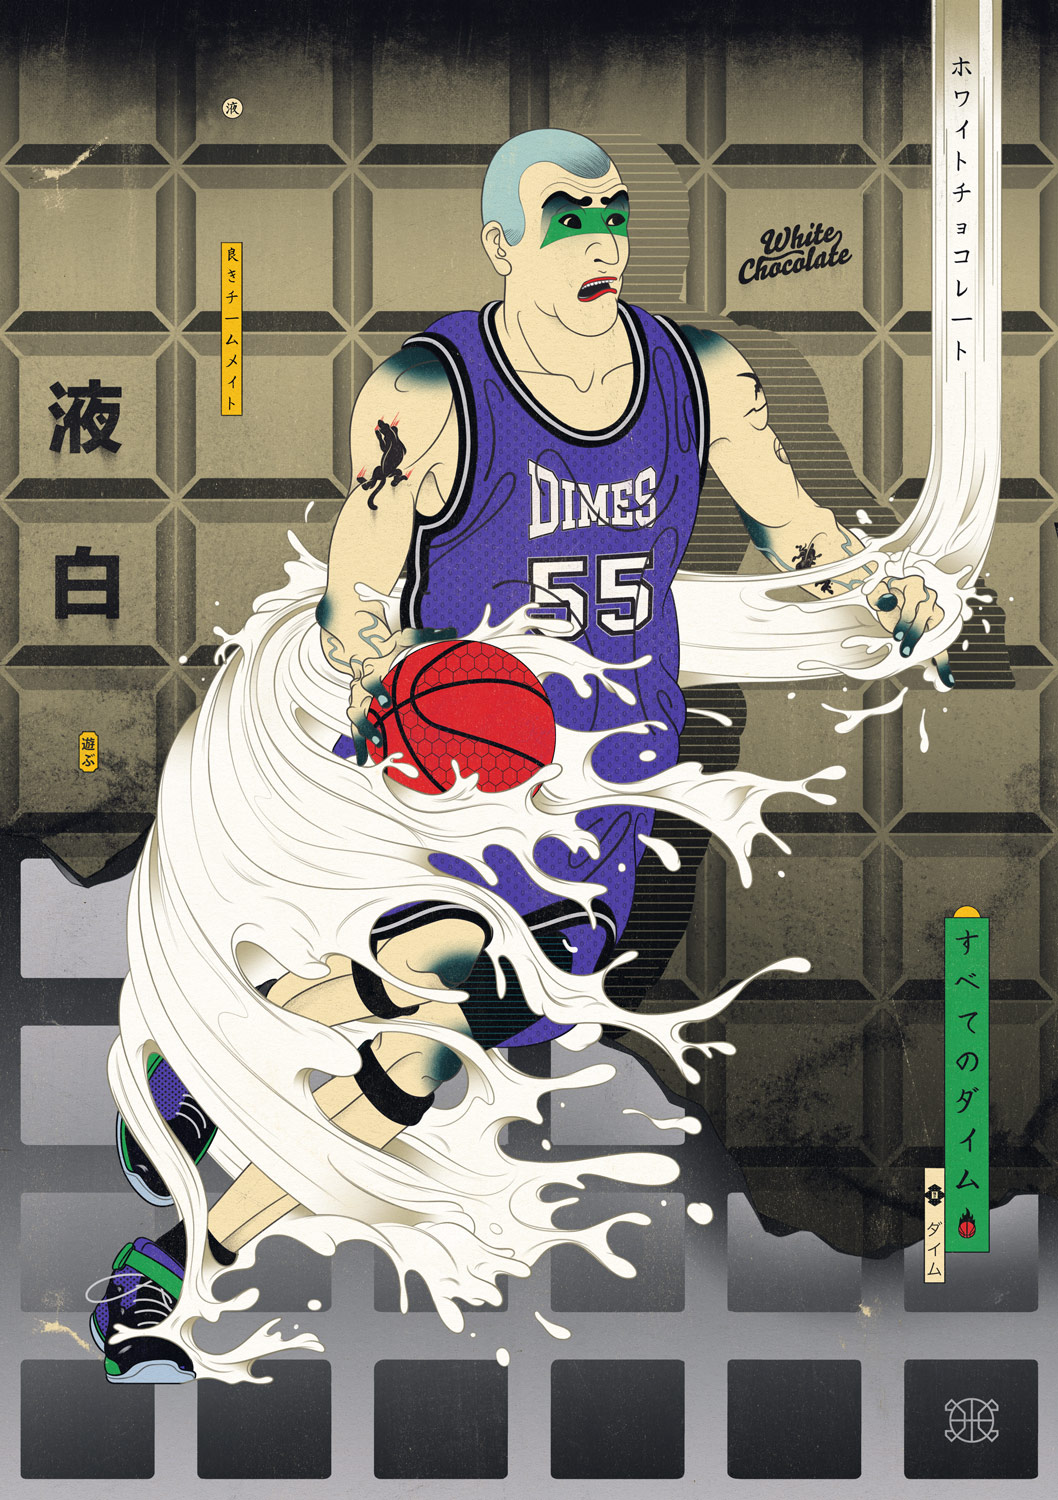 Edo Ball NBA Basketball Art - Jason Williams, White Chocolate.